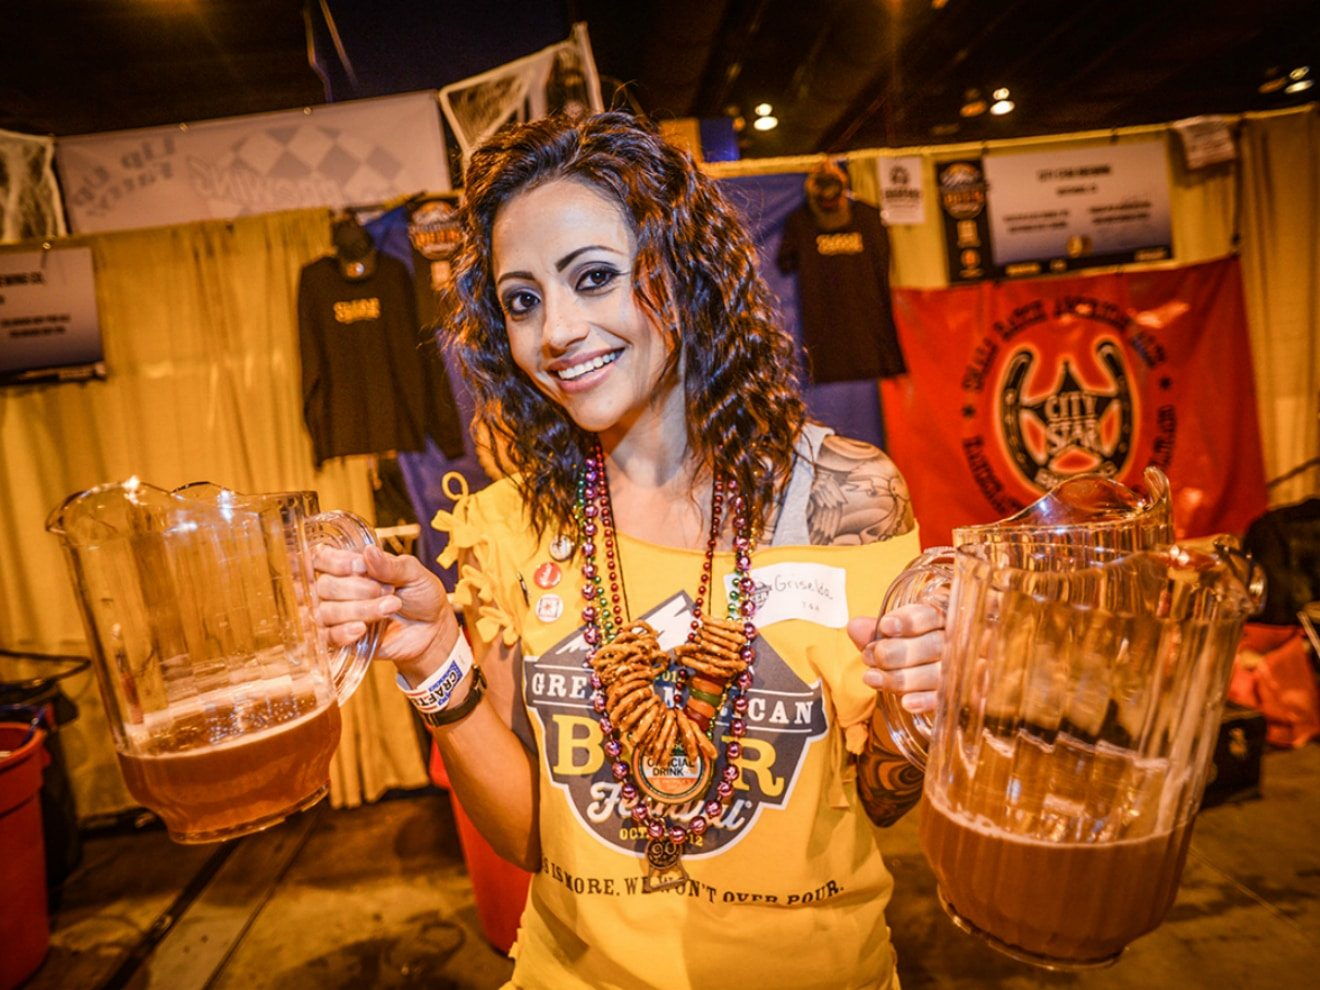 Beer lover's delight at Colombia's PolaFest